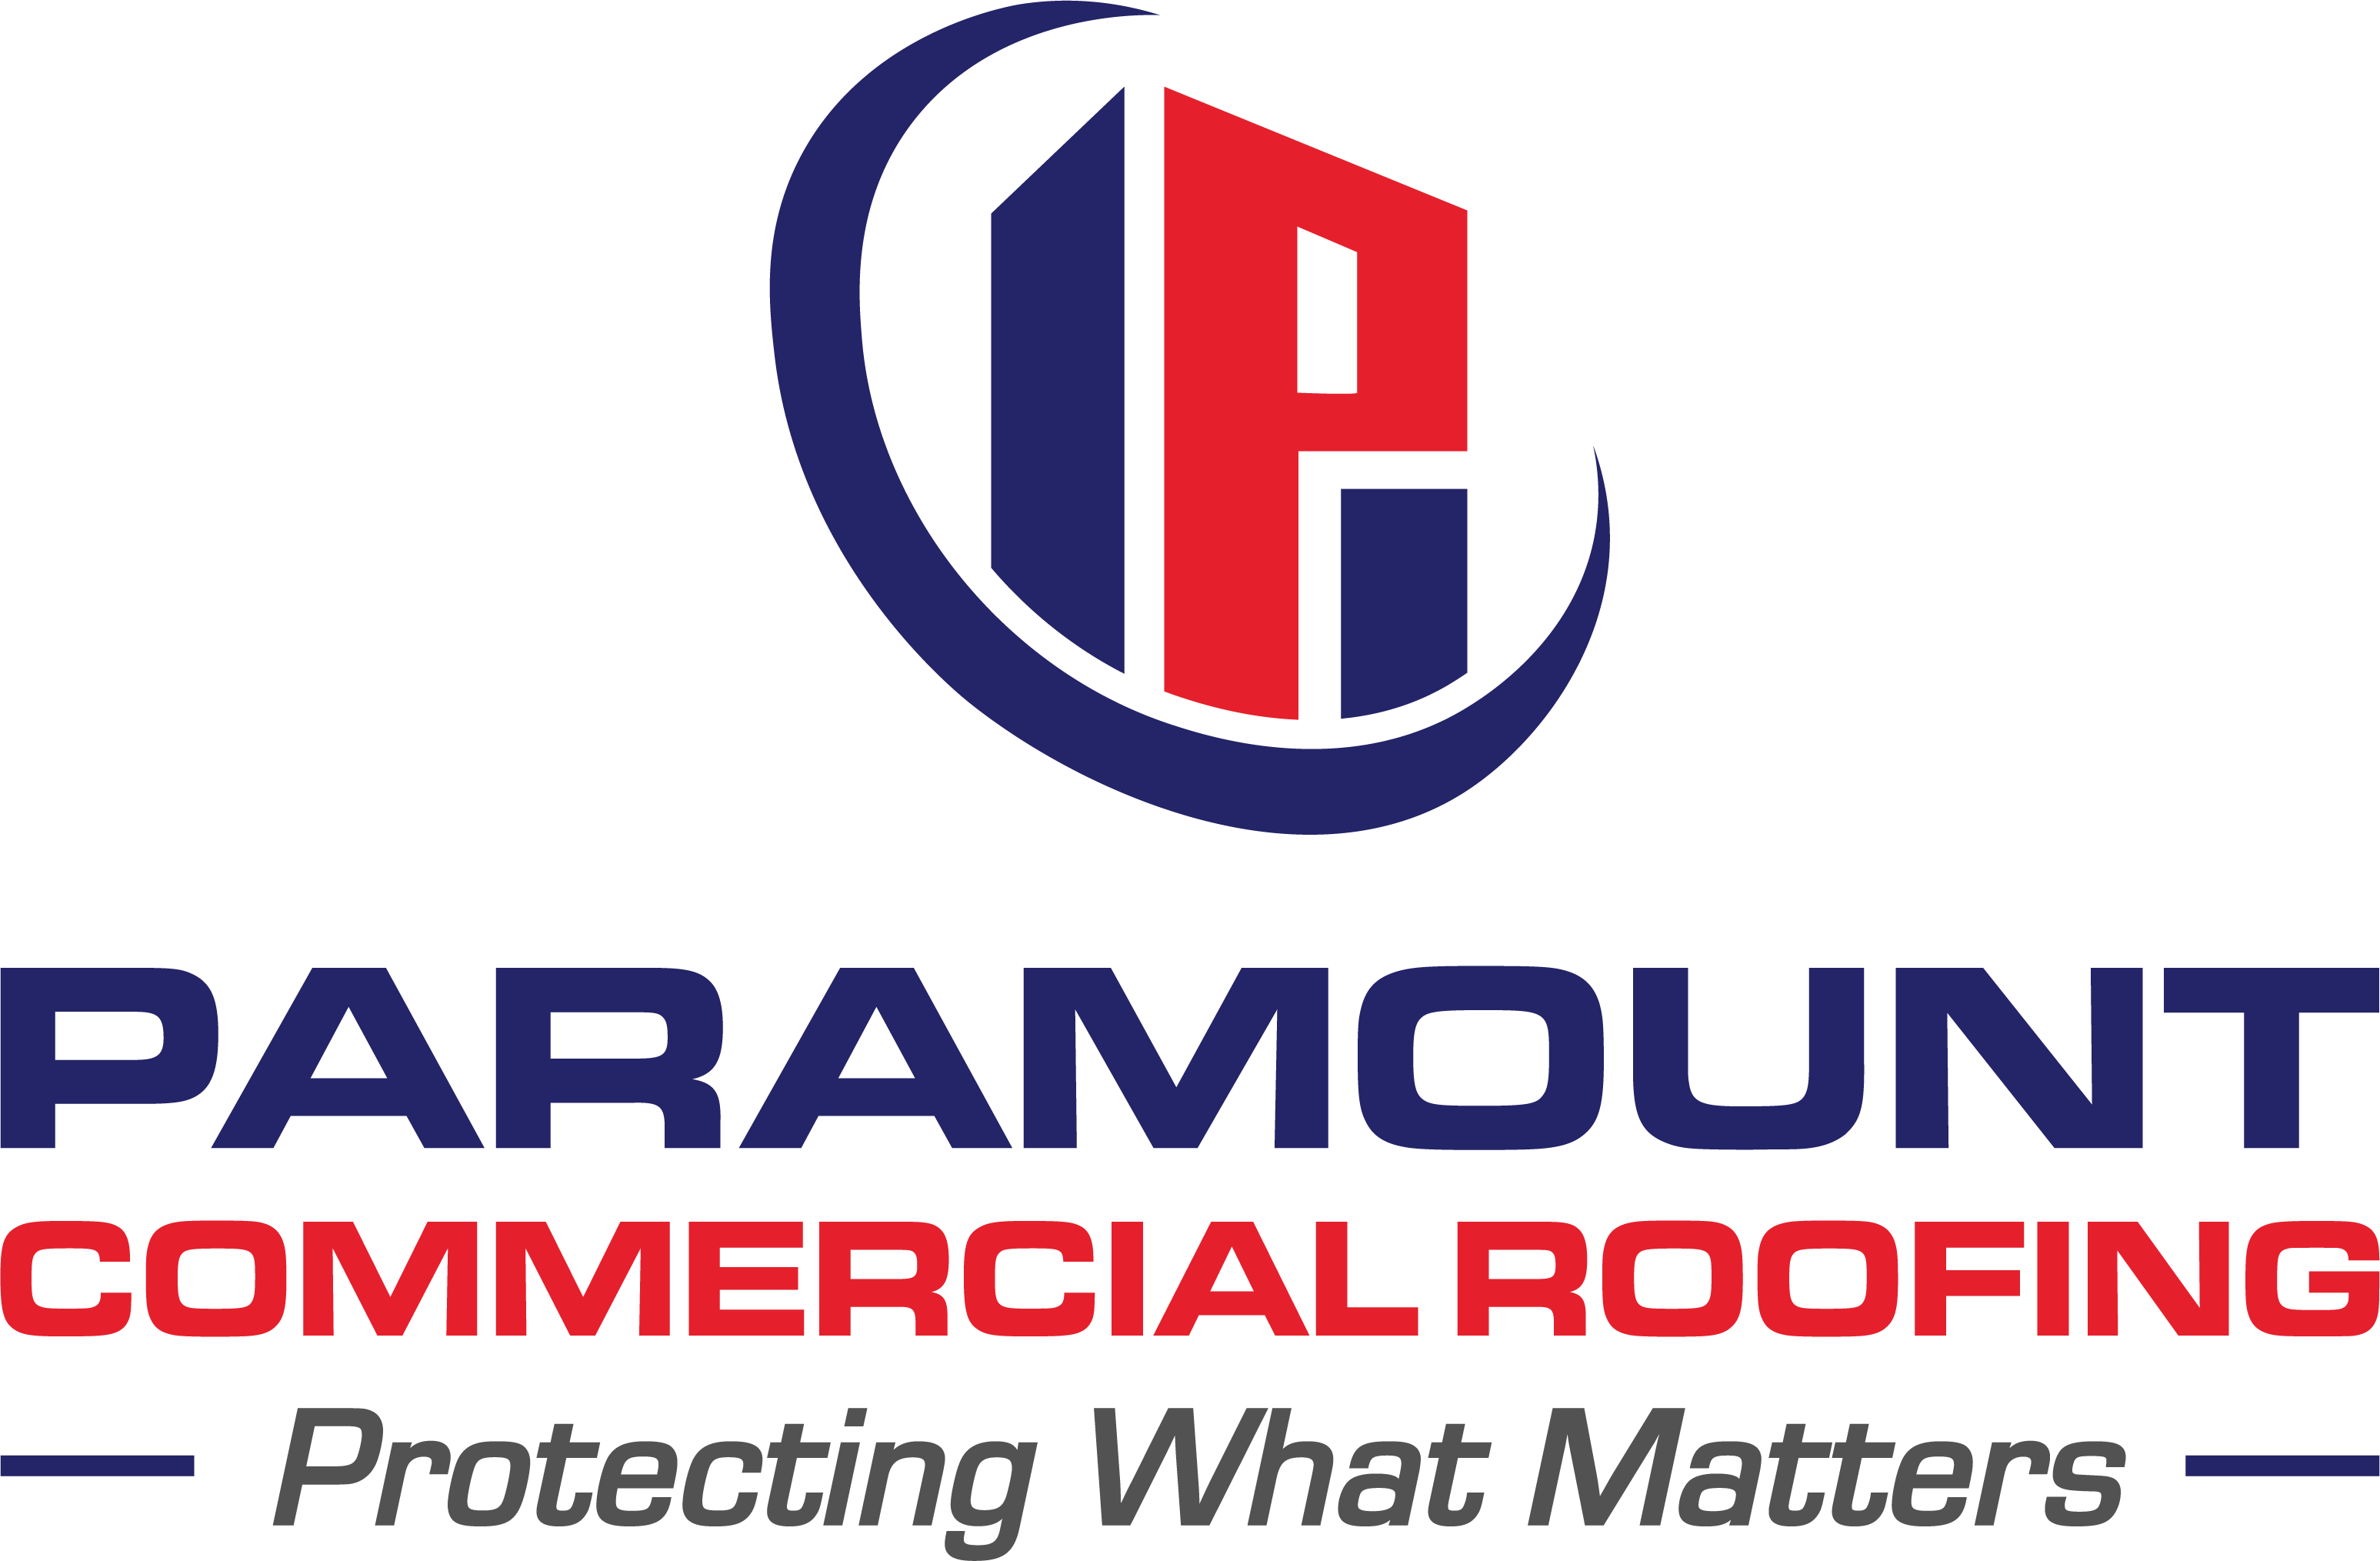 Paramount Commercial Roofing Systems